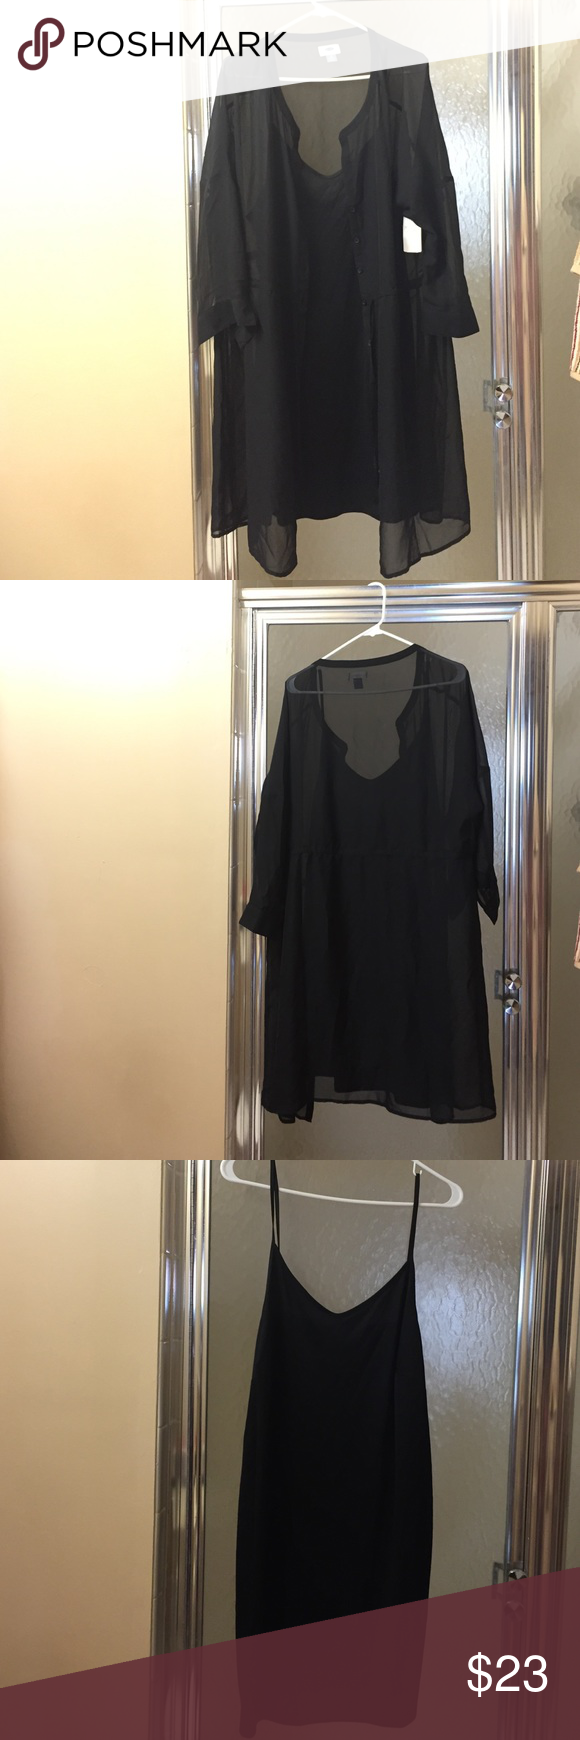 Plus size dress Sheer button up dress, with black slip dress, never worn with tags... Old Navy Dresses